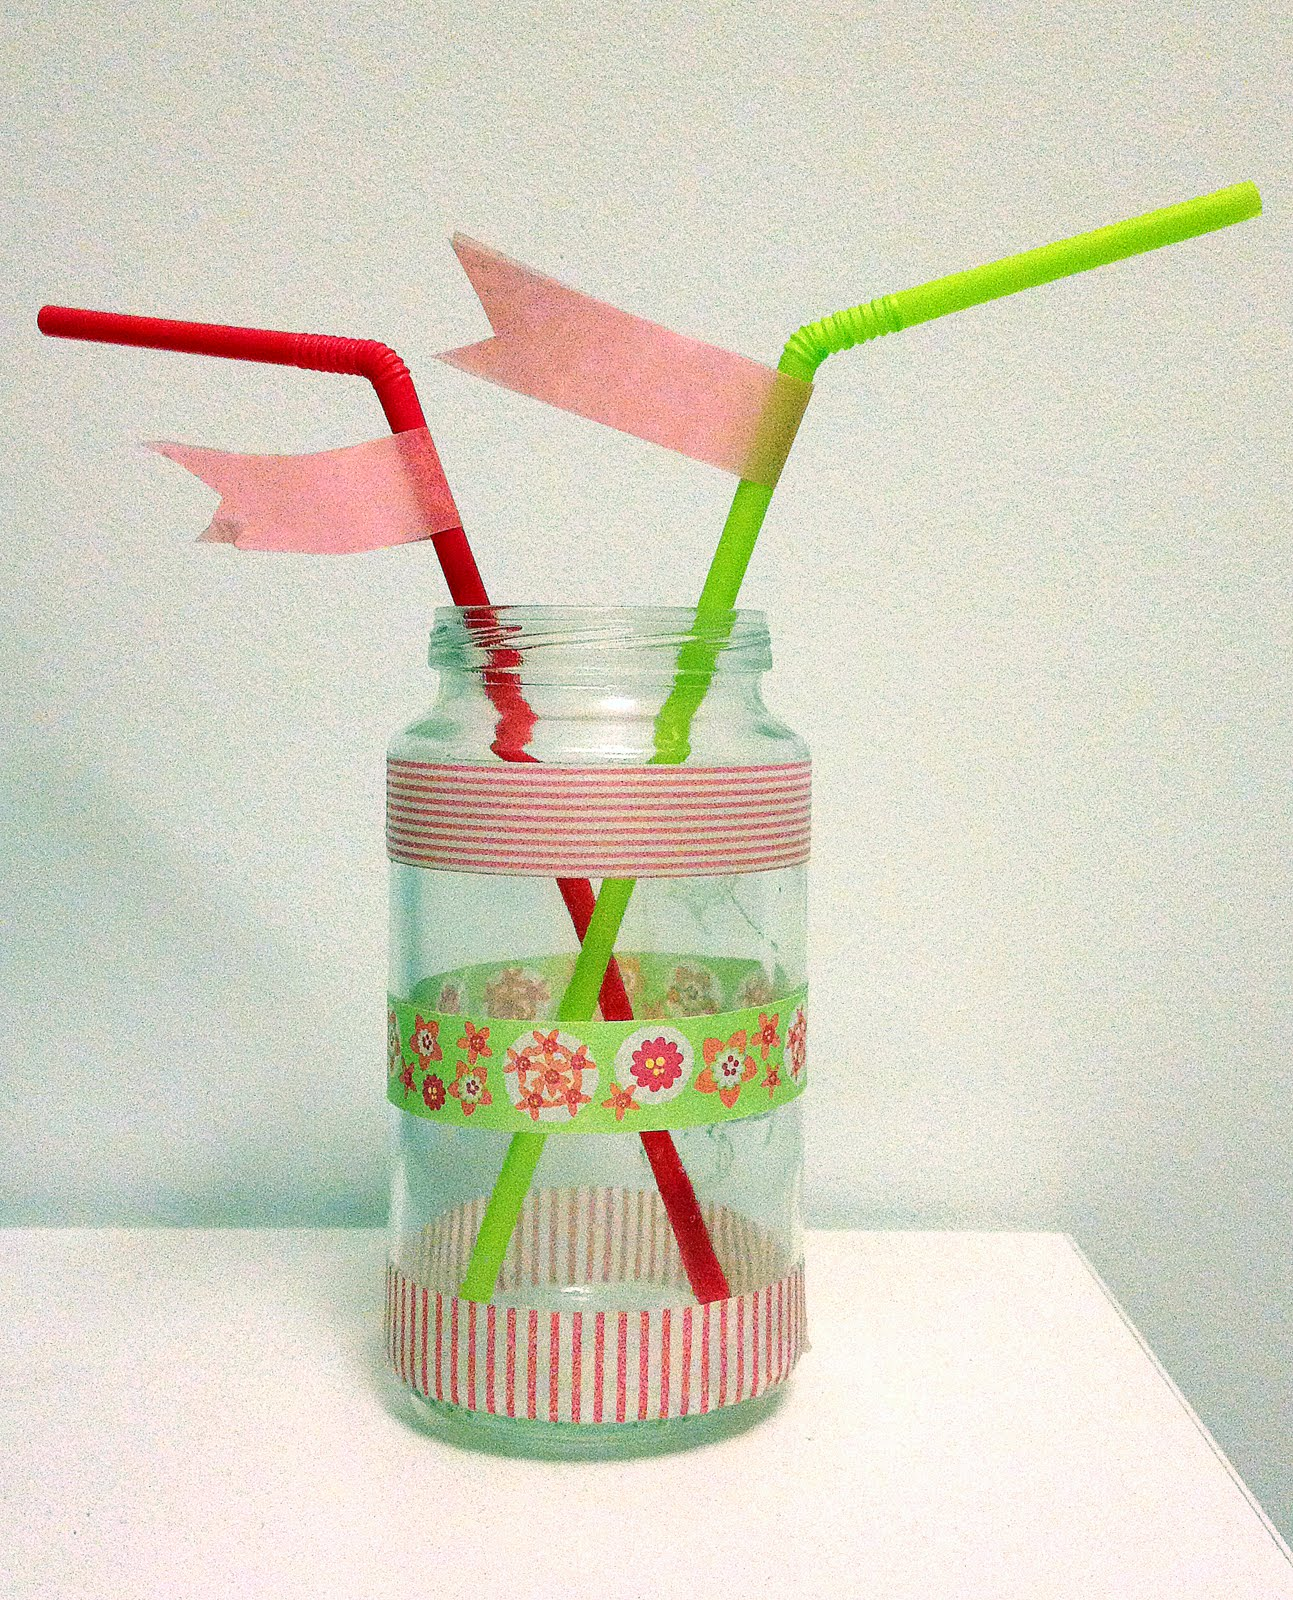 Bote de potito decorado con washi tape